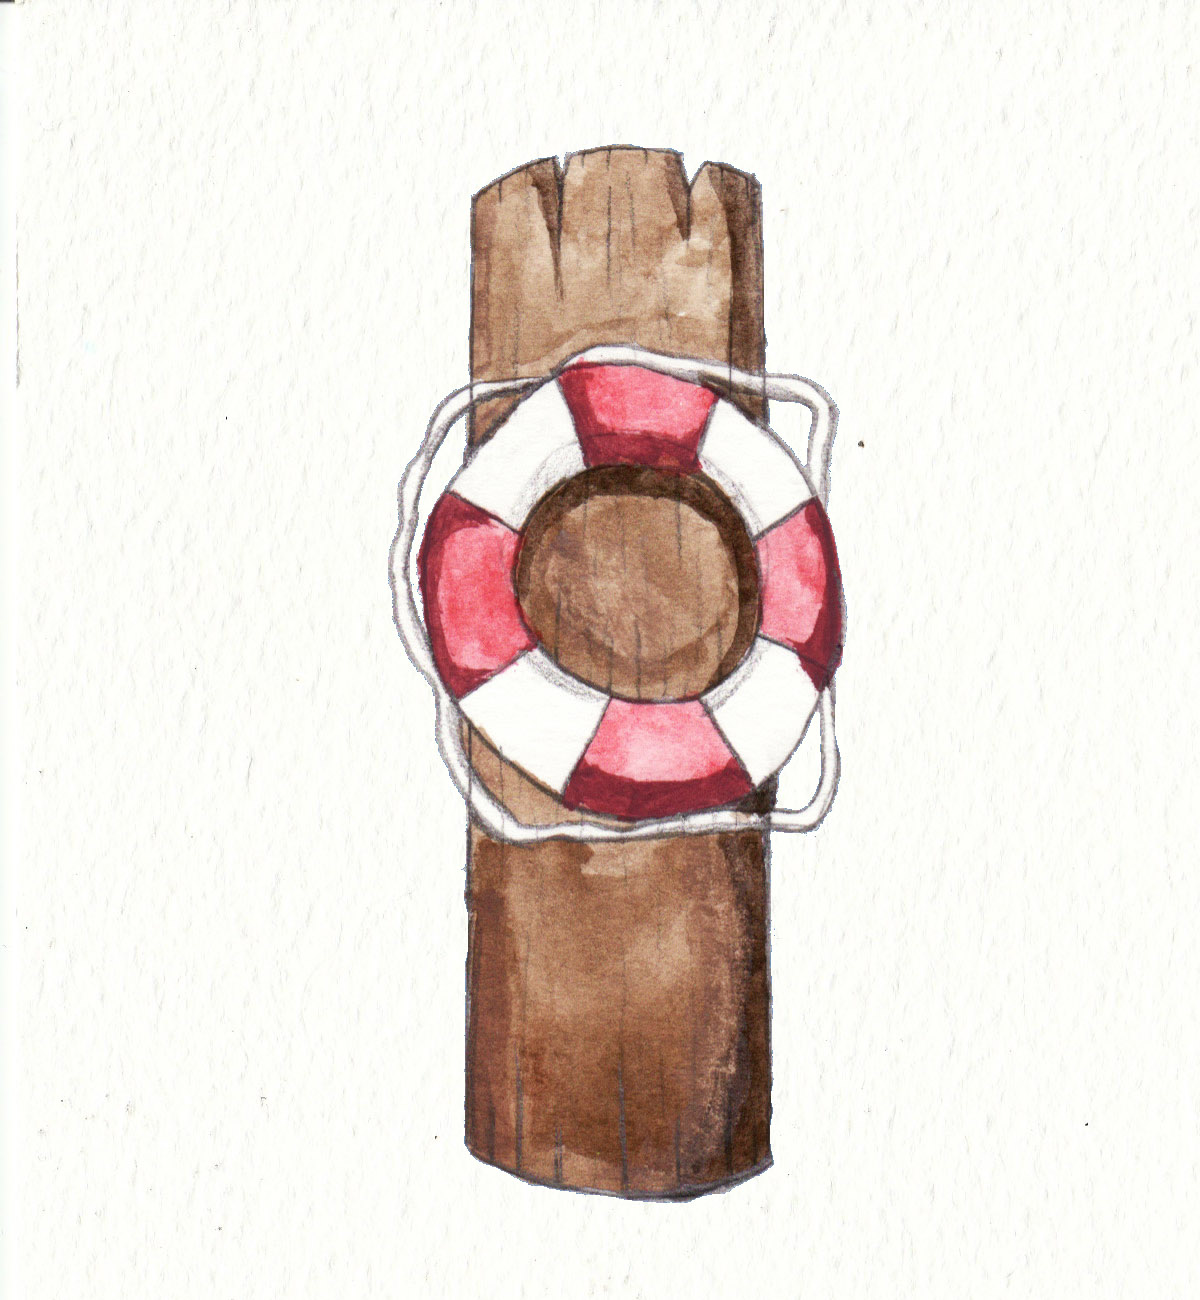 Rescue Ring on Pole by Louisetheanimator